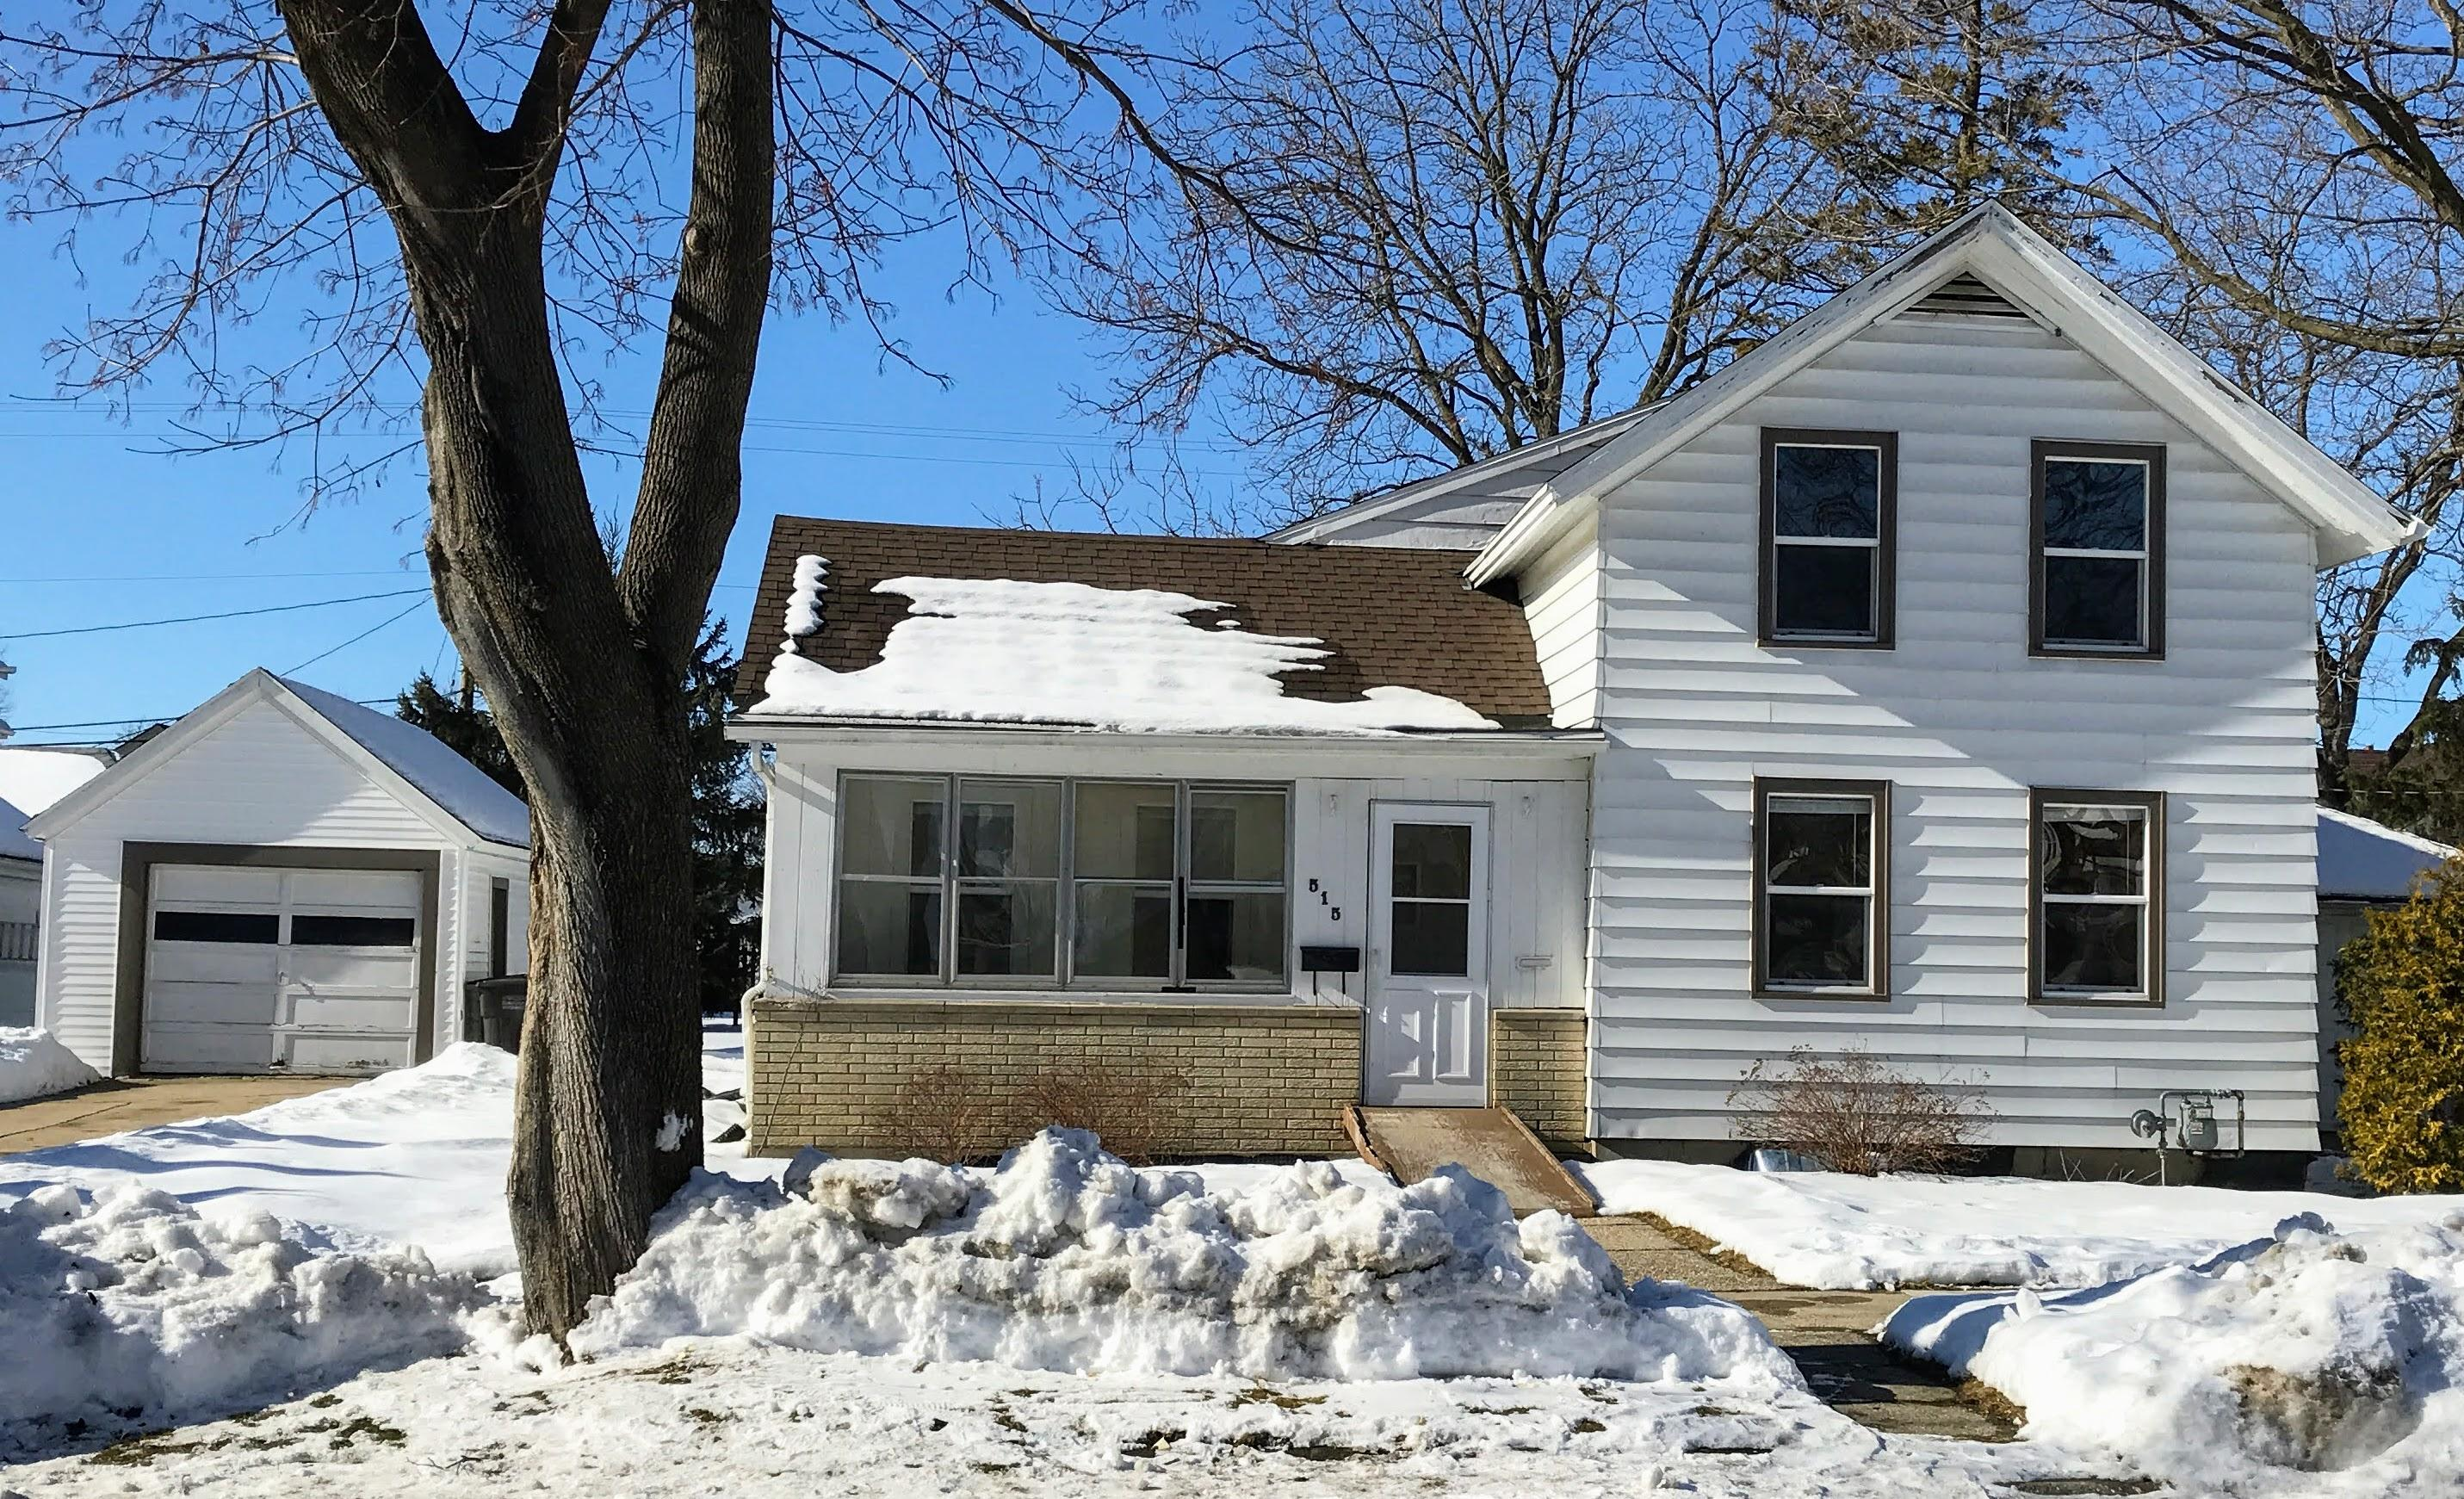 Photo of 515 S Whitewater Ave, Jefferson, WI 53549